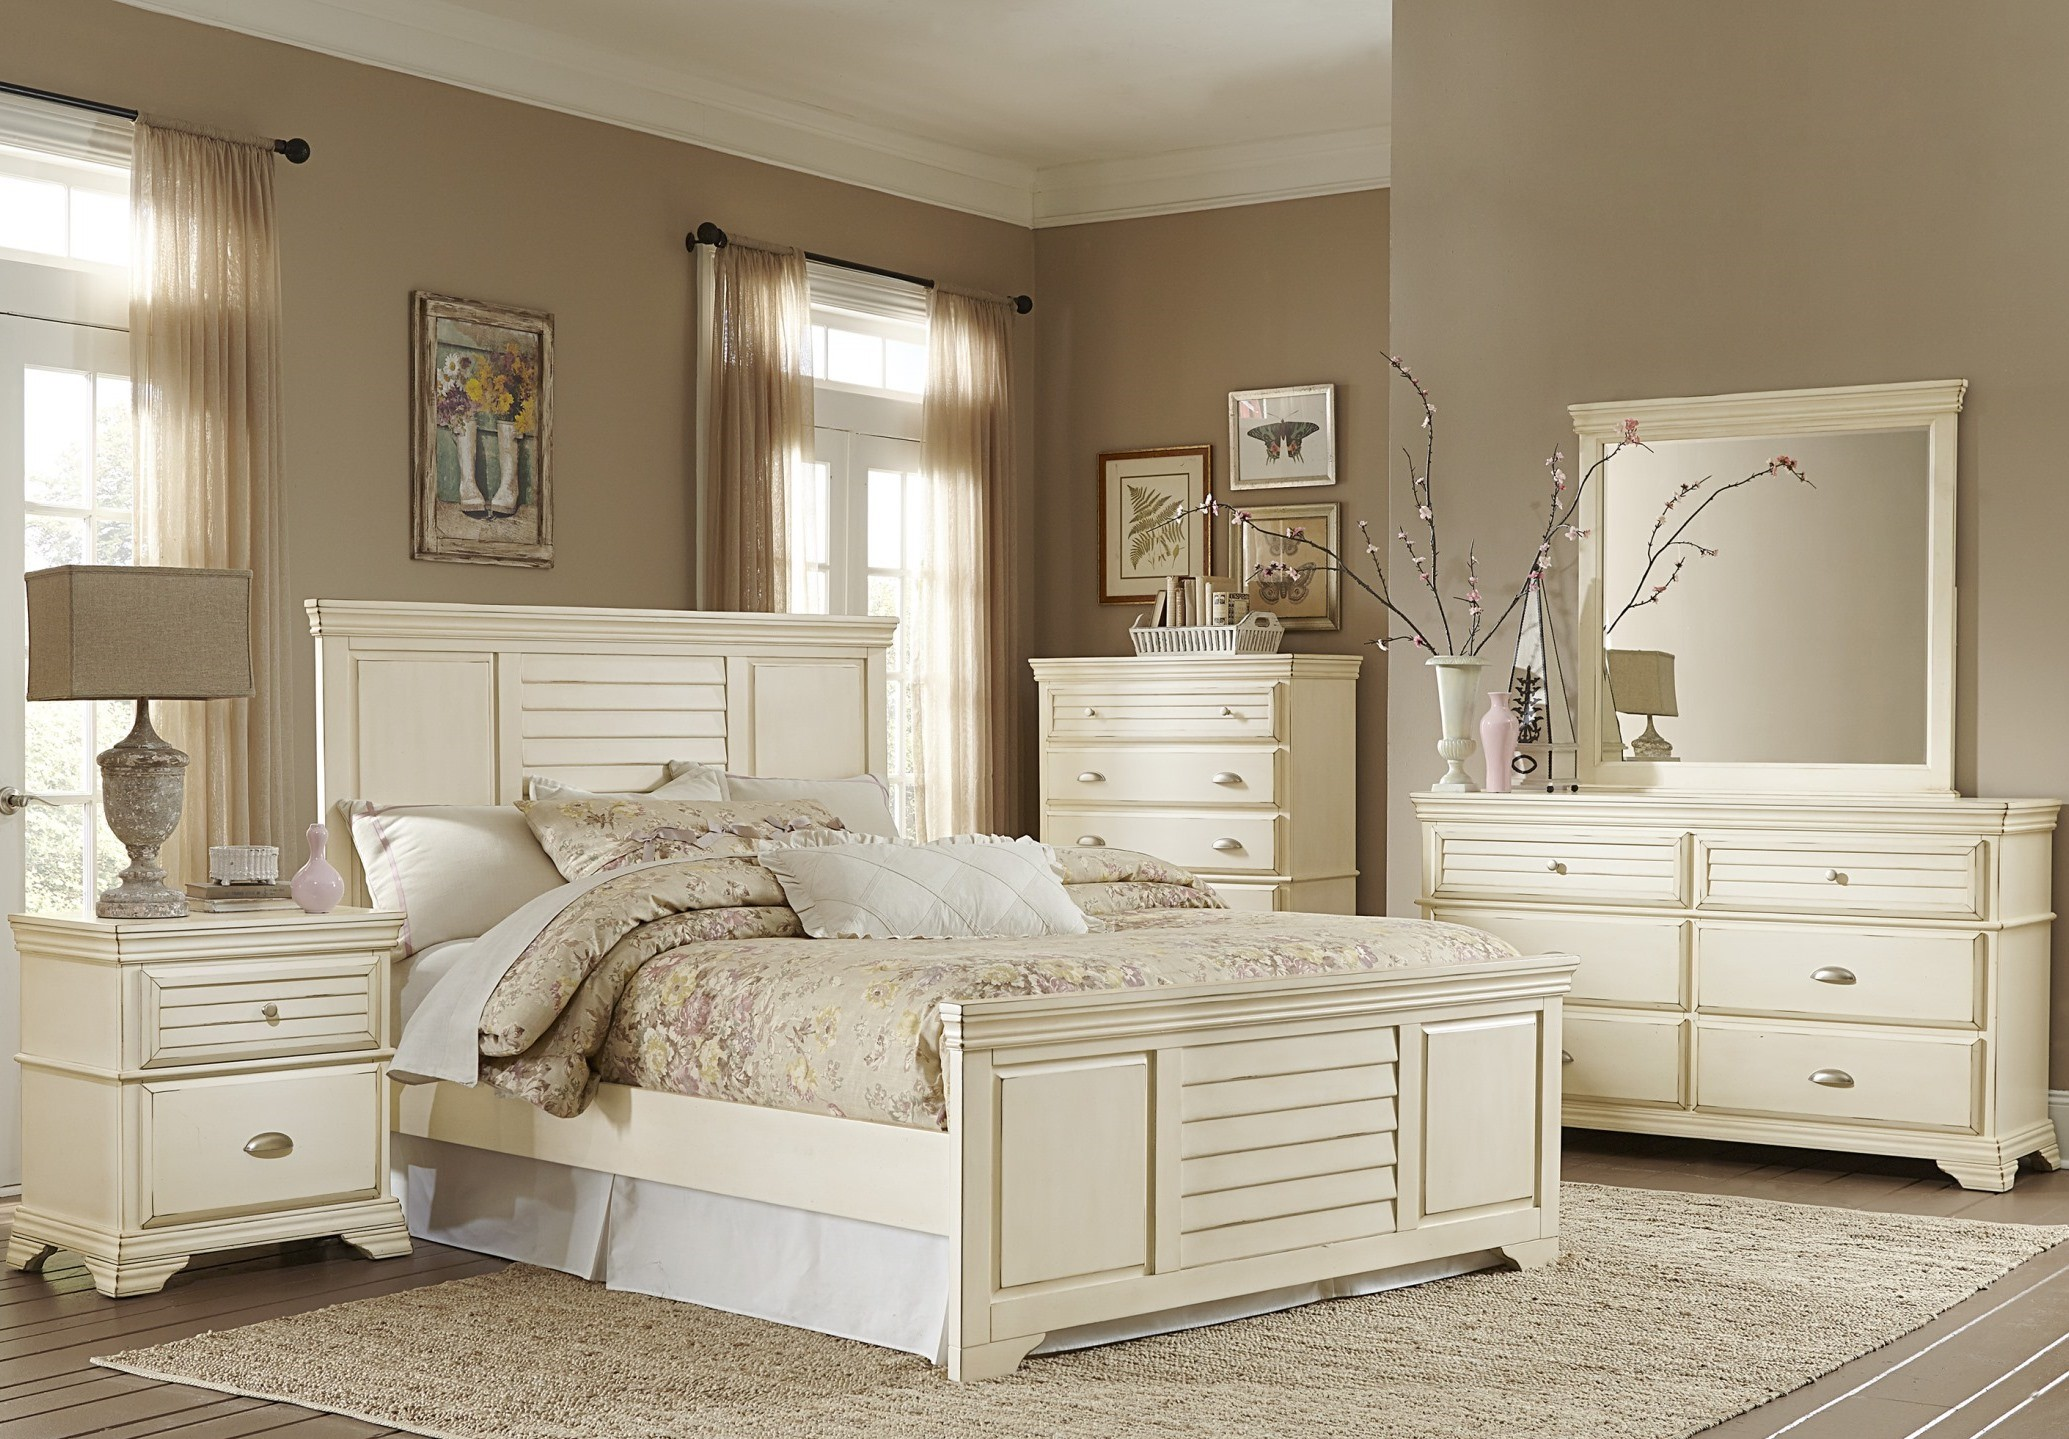 laurinda antique white panel bedroom set from homelegance 87958